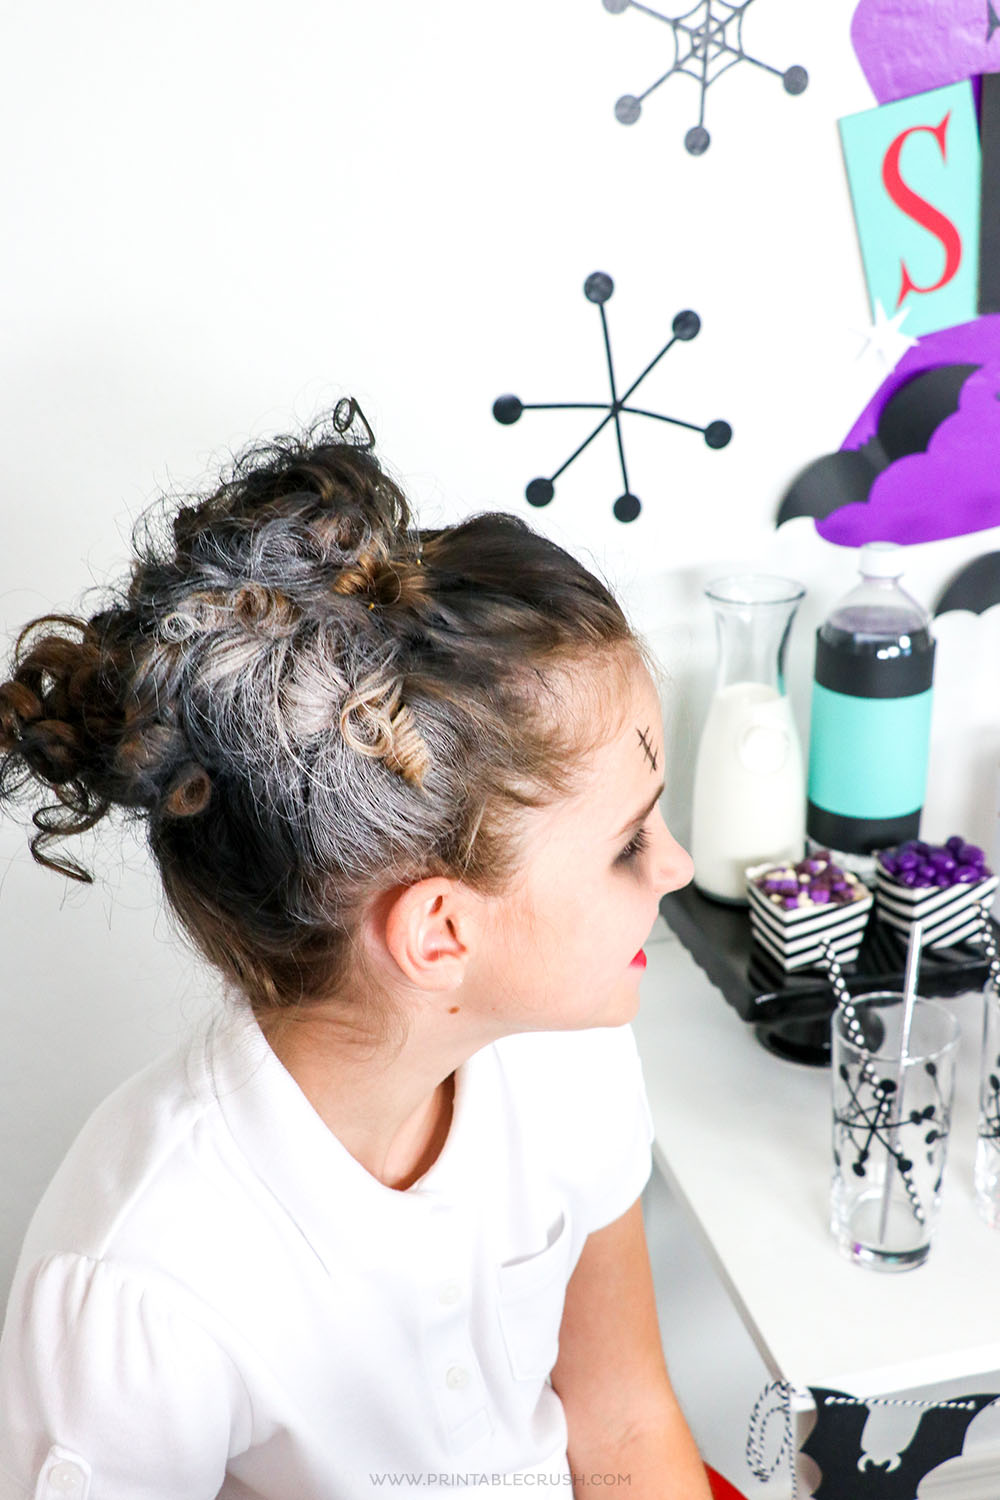 Stick some eighties style rollers in your daughters hair and add some colored hairspray for a Bride of Frankenstein hairstyle!